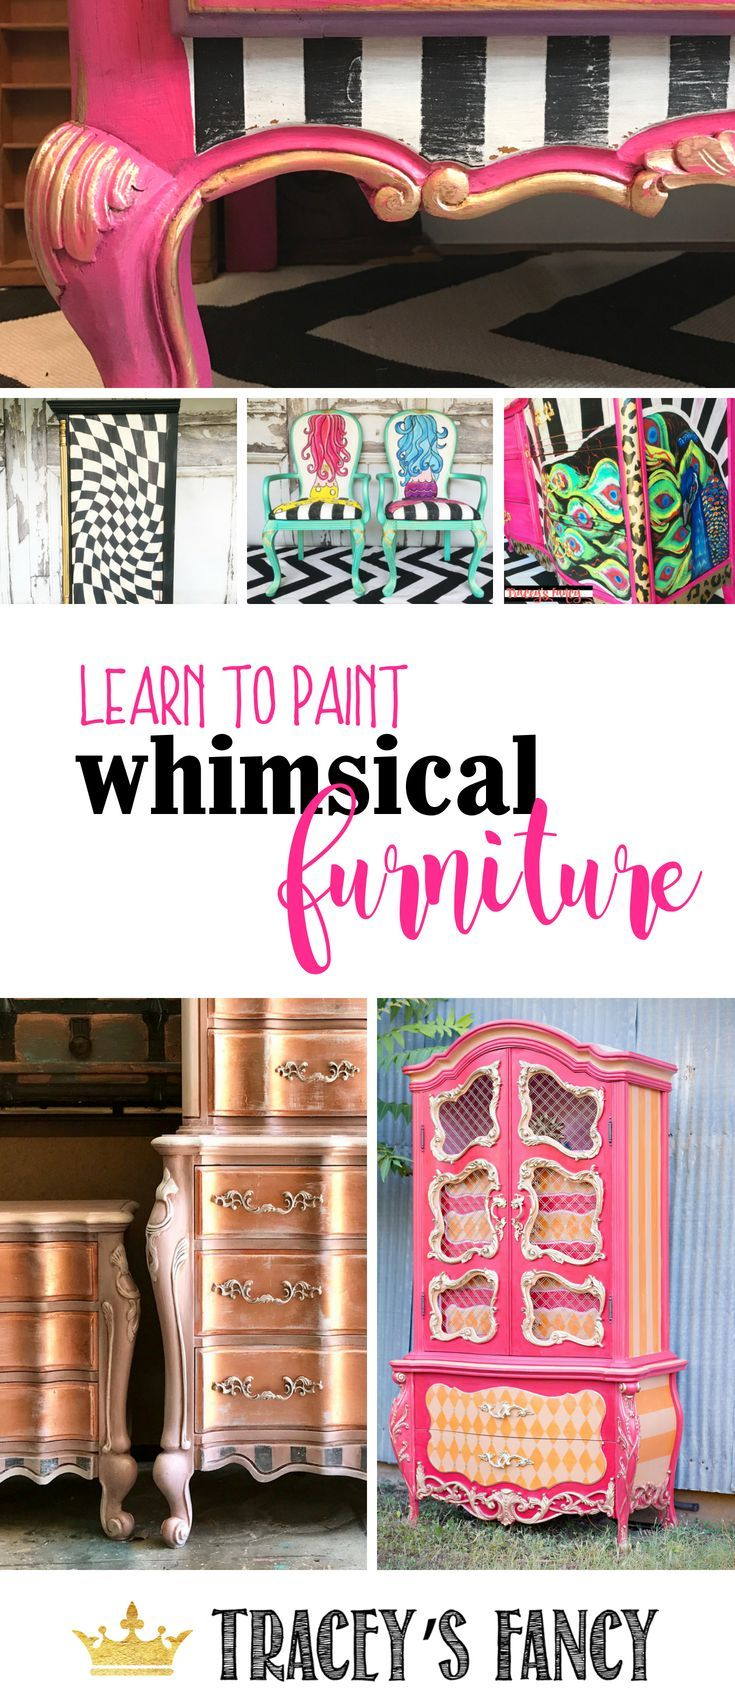 Learn How to Paint Whimsical Furniture with Tracey Bellion | Learn to paint Stri...